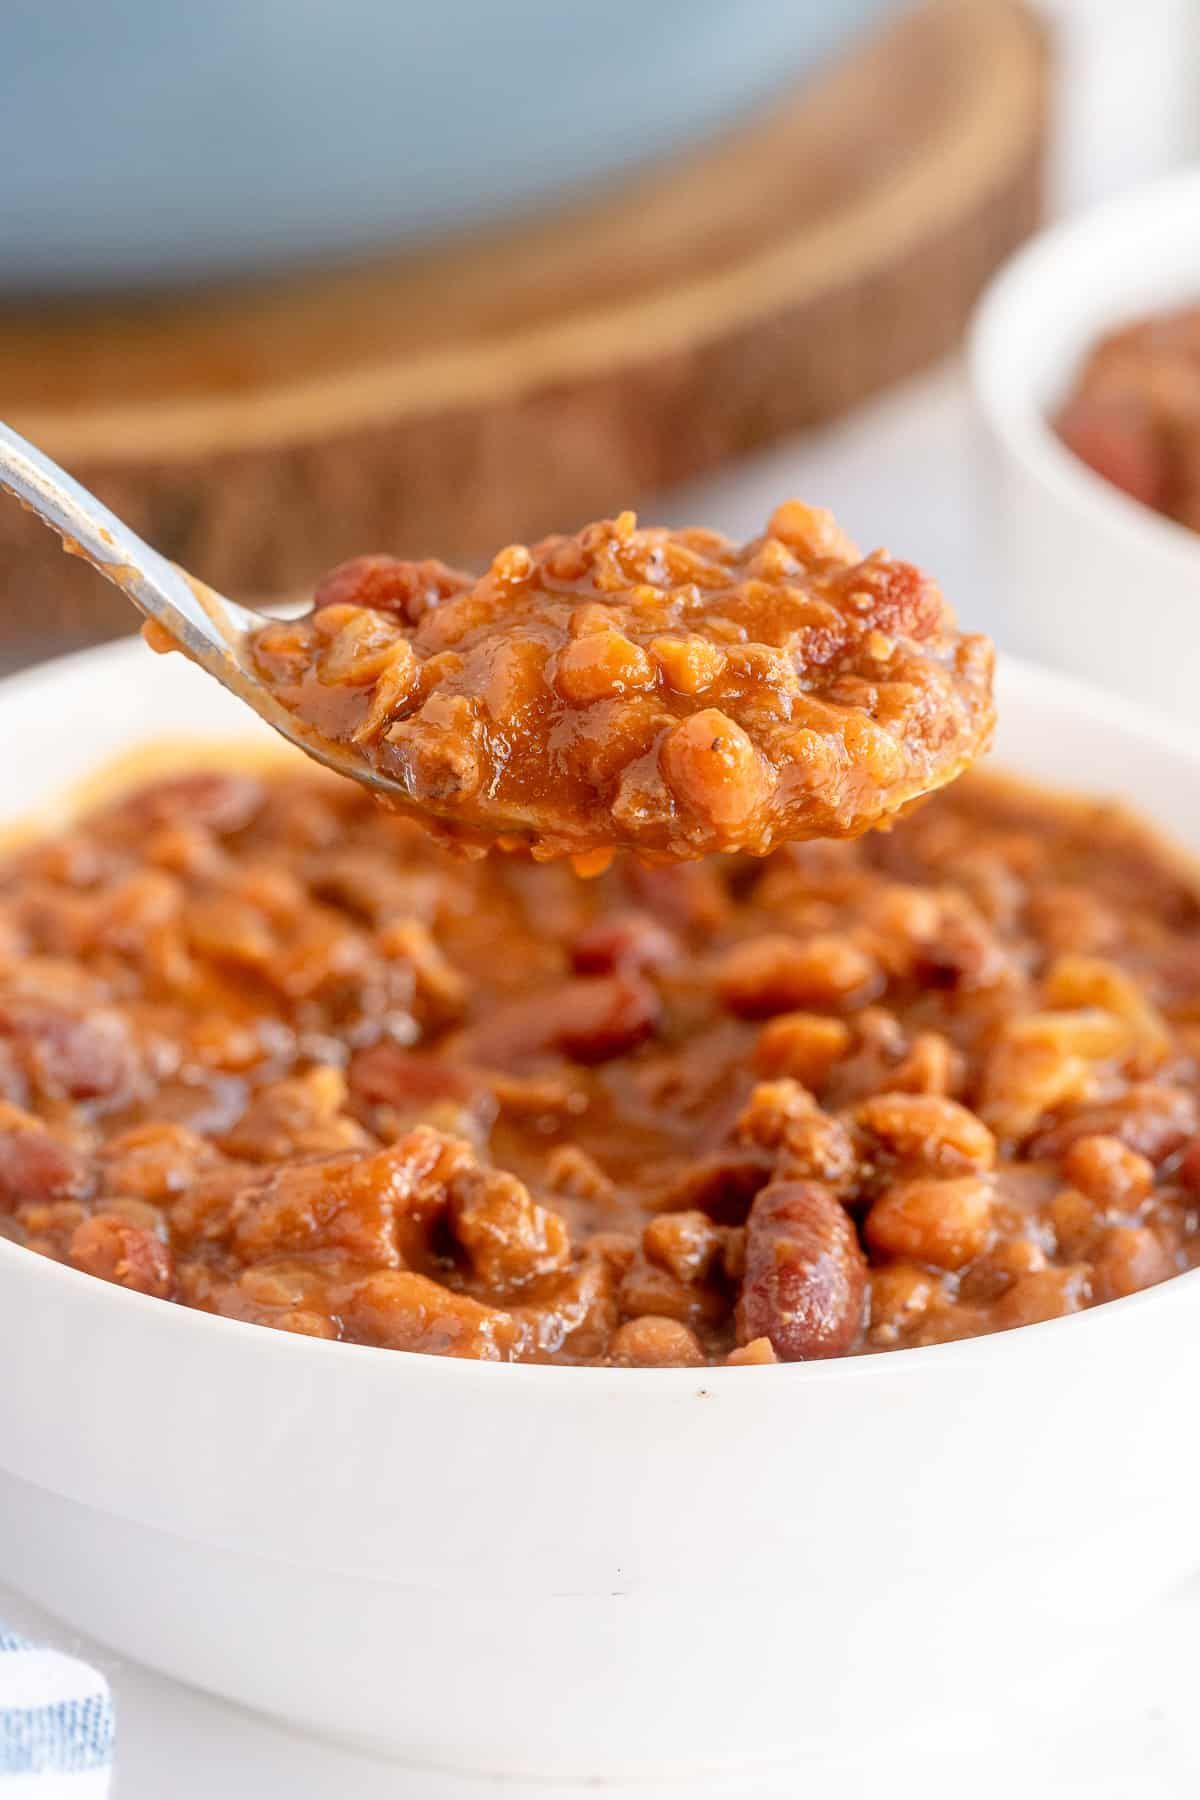 A spoon hovers over a bowl of baked beans.